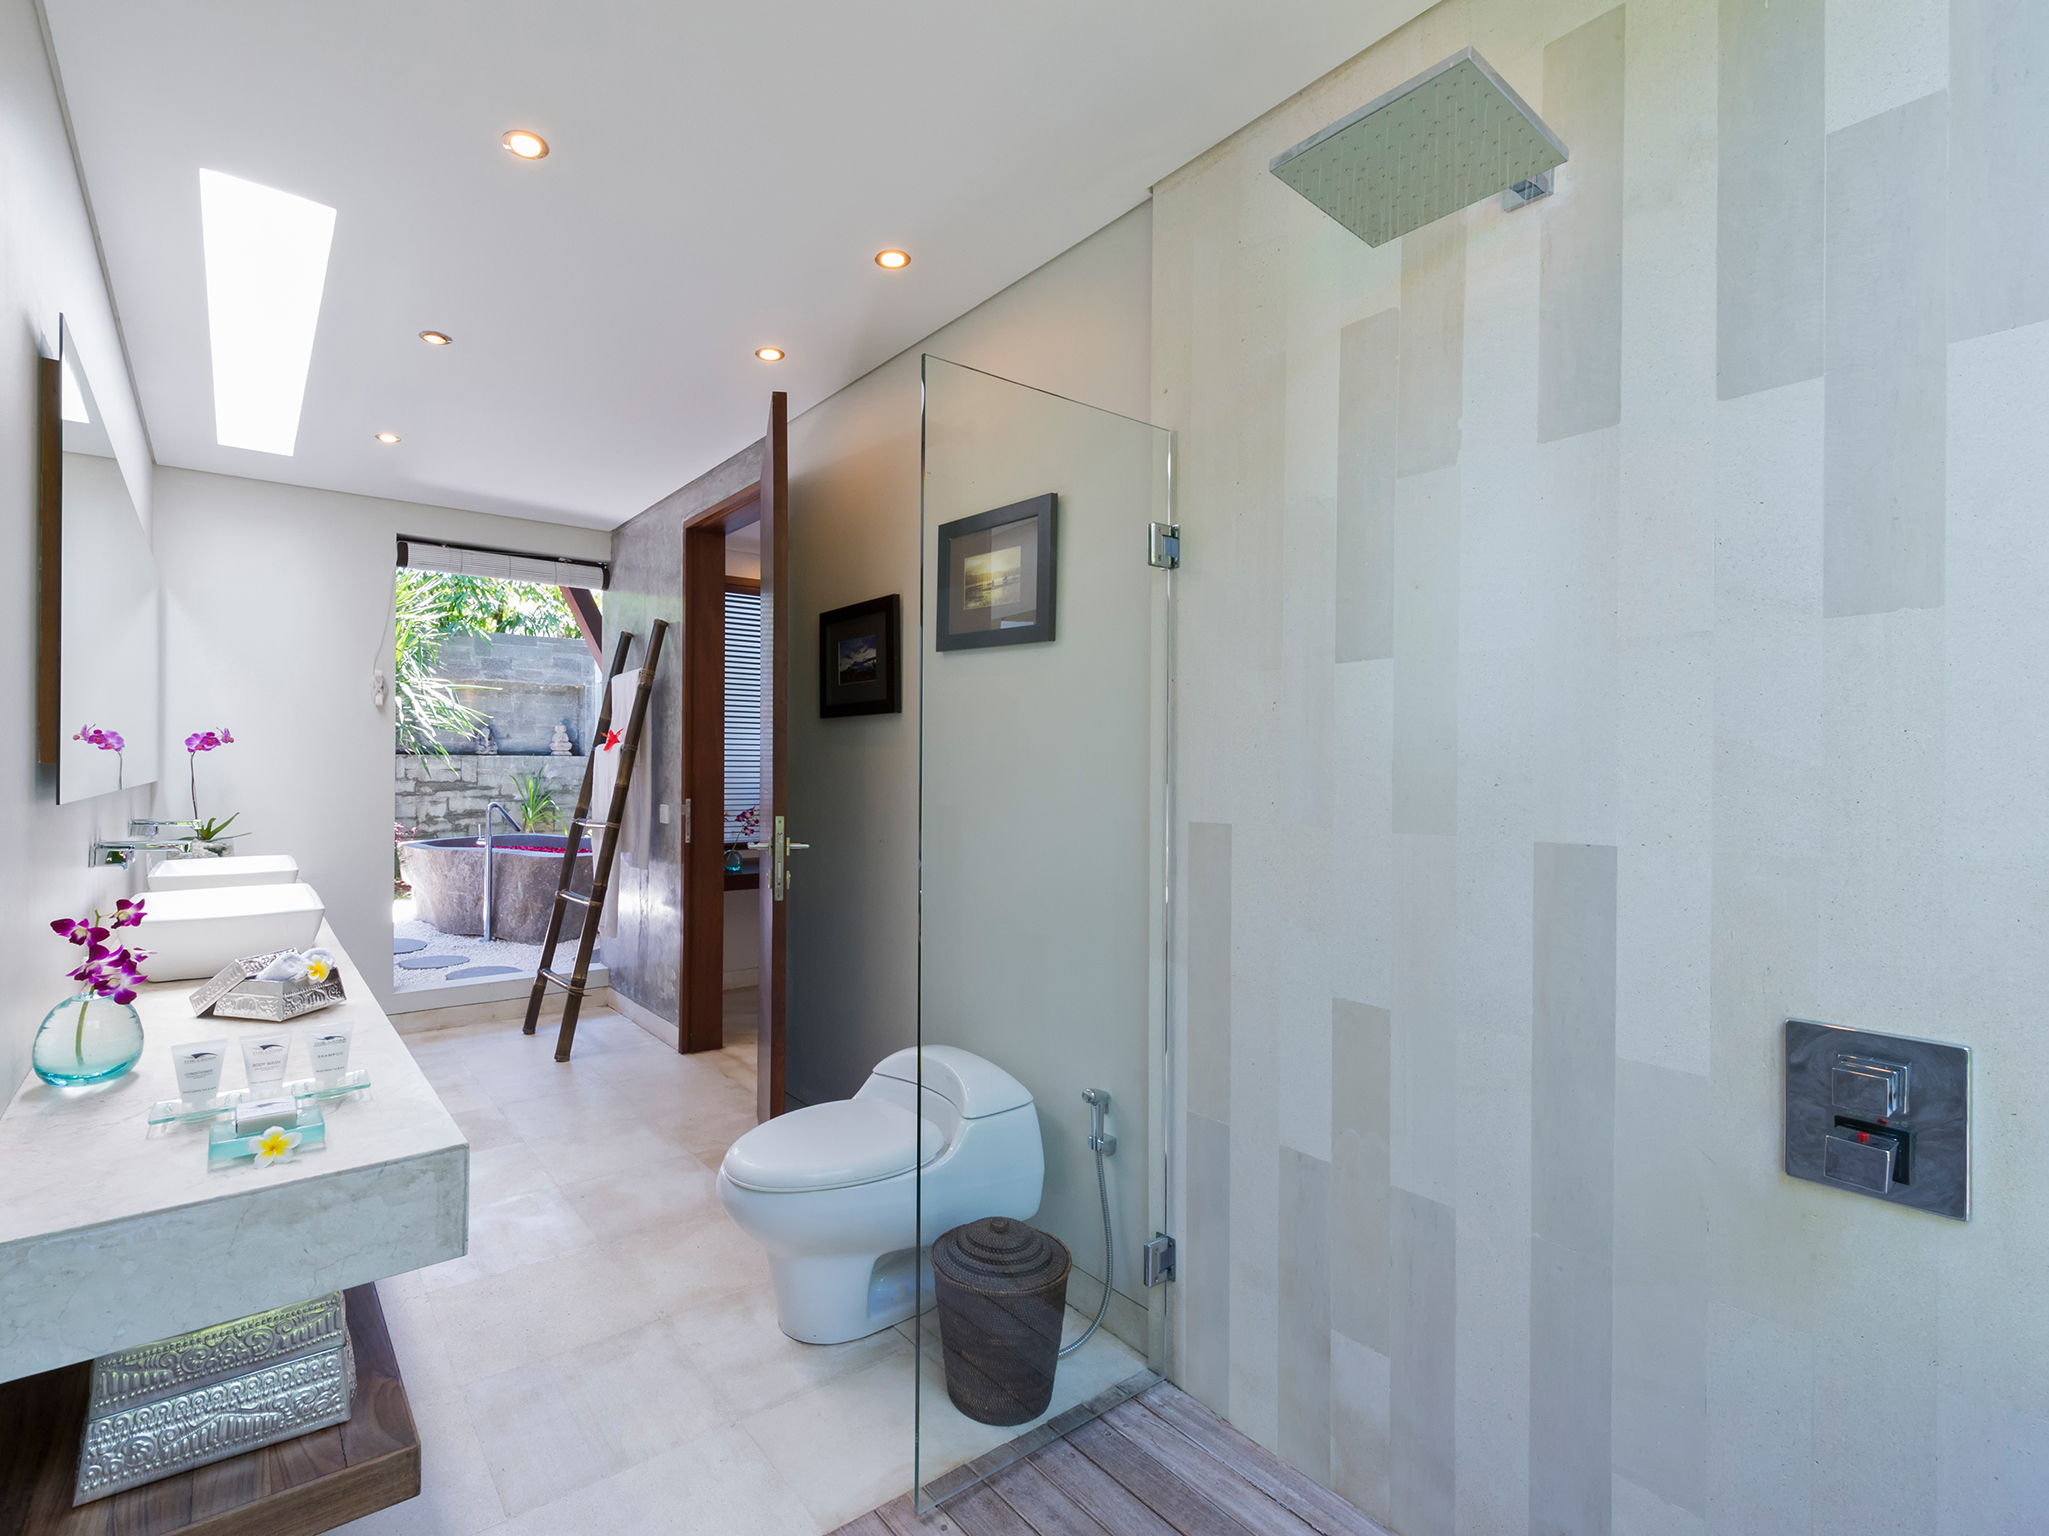 The Layar 1BR - Indoor bathroom - The Layar - Villa 2B (1BR), ,